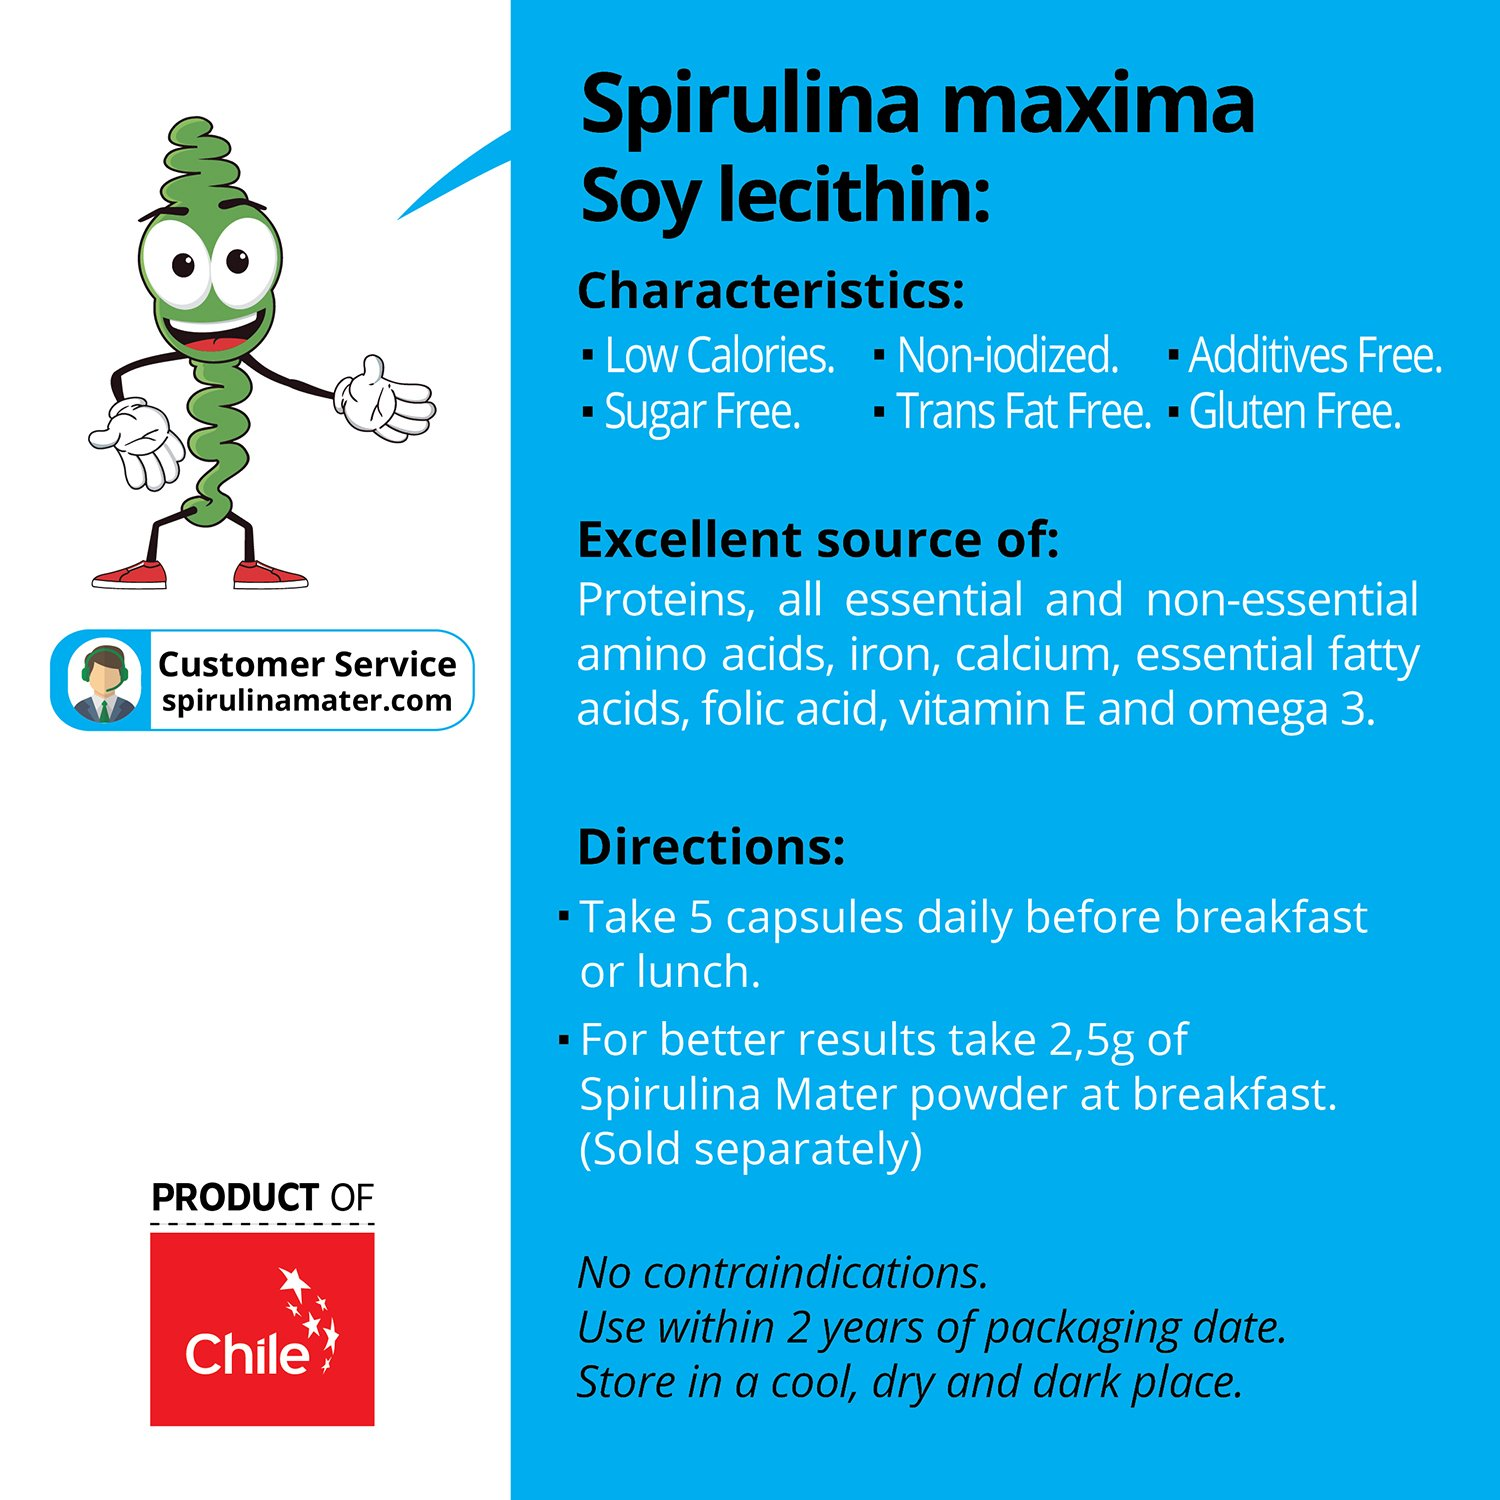 Amazon.com: Spirulina Capsules + Vitamin C 500 mg 150 Ct by SPIRULINA Mater - Blue Green Algae Superfood - High Protein Supplement - Organic, Vegan, ...